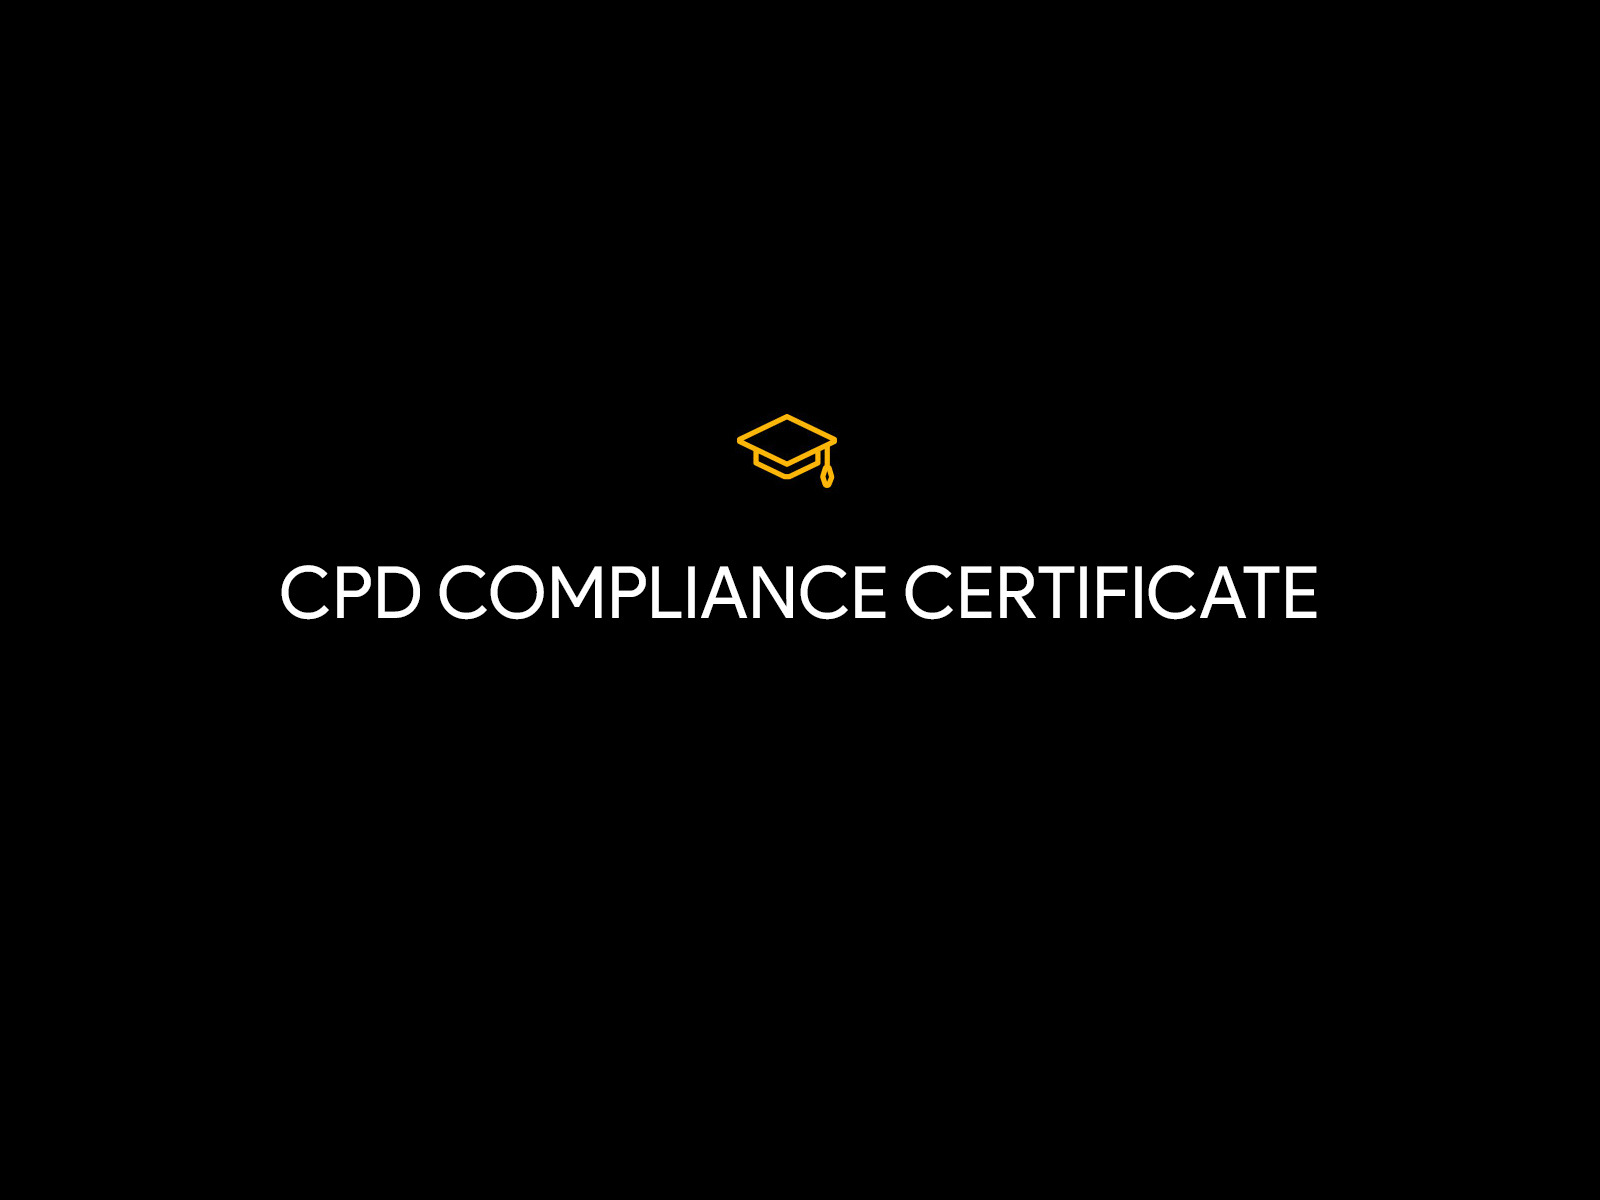 cpd compliance